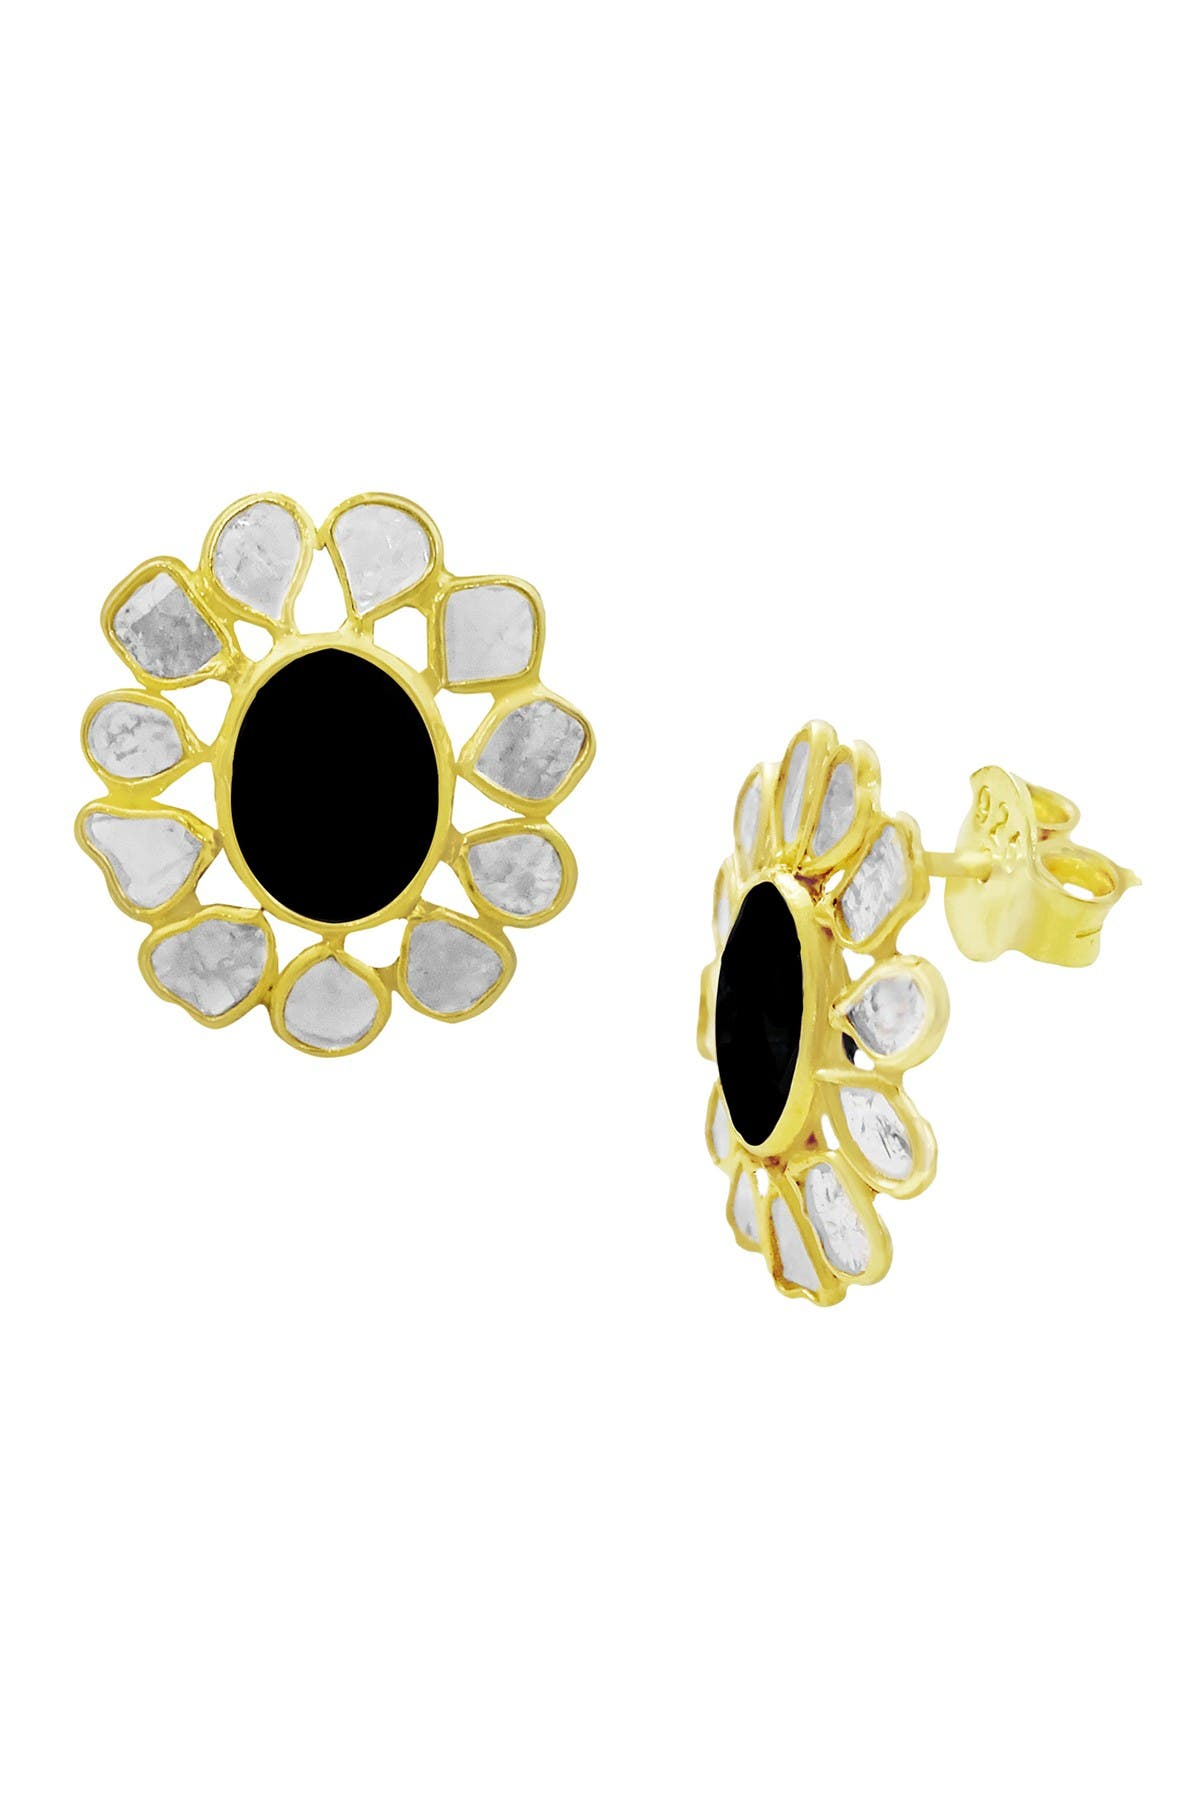 Savvy Cie 18K Gold Vermeil Sliced Diamond & Black Spinel Stud Earrings - 0.75 ctw at Nordstrom Rack